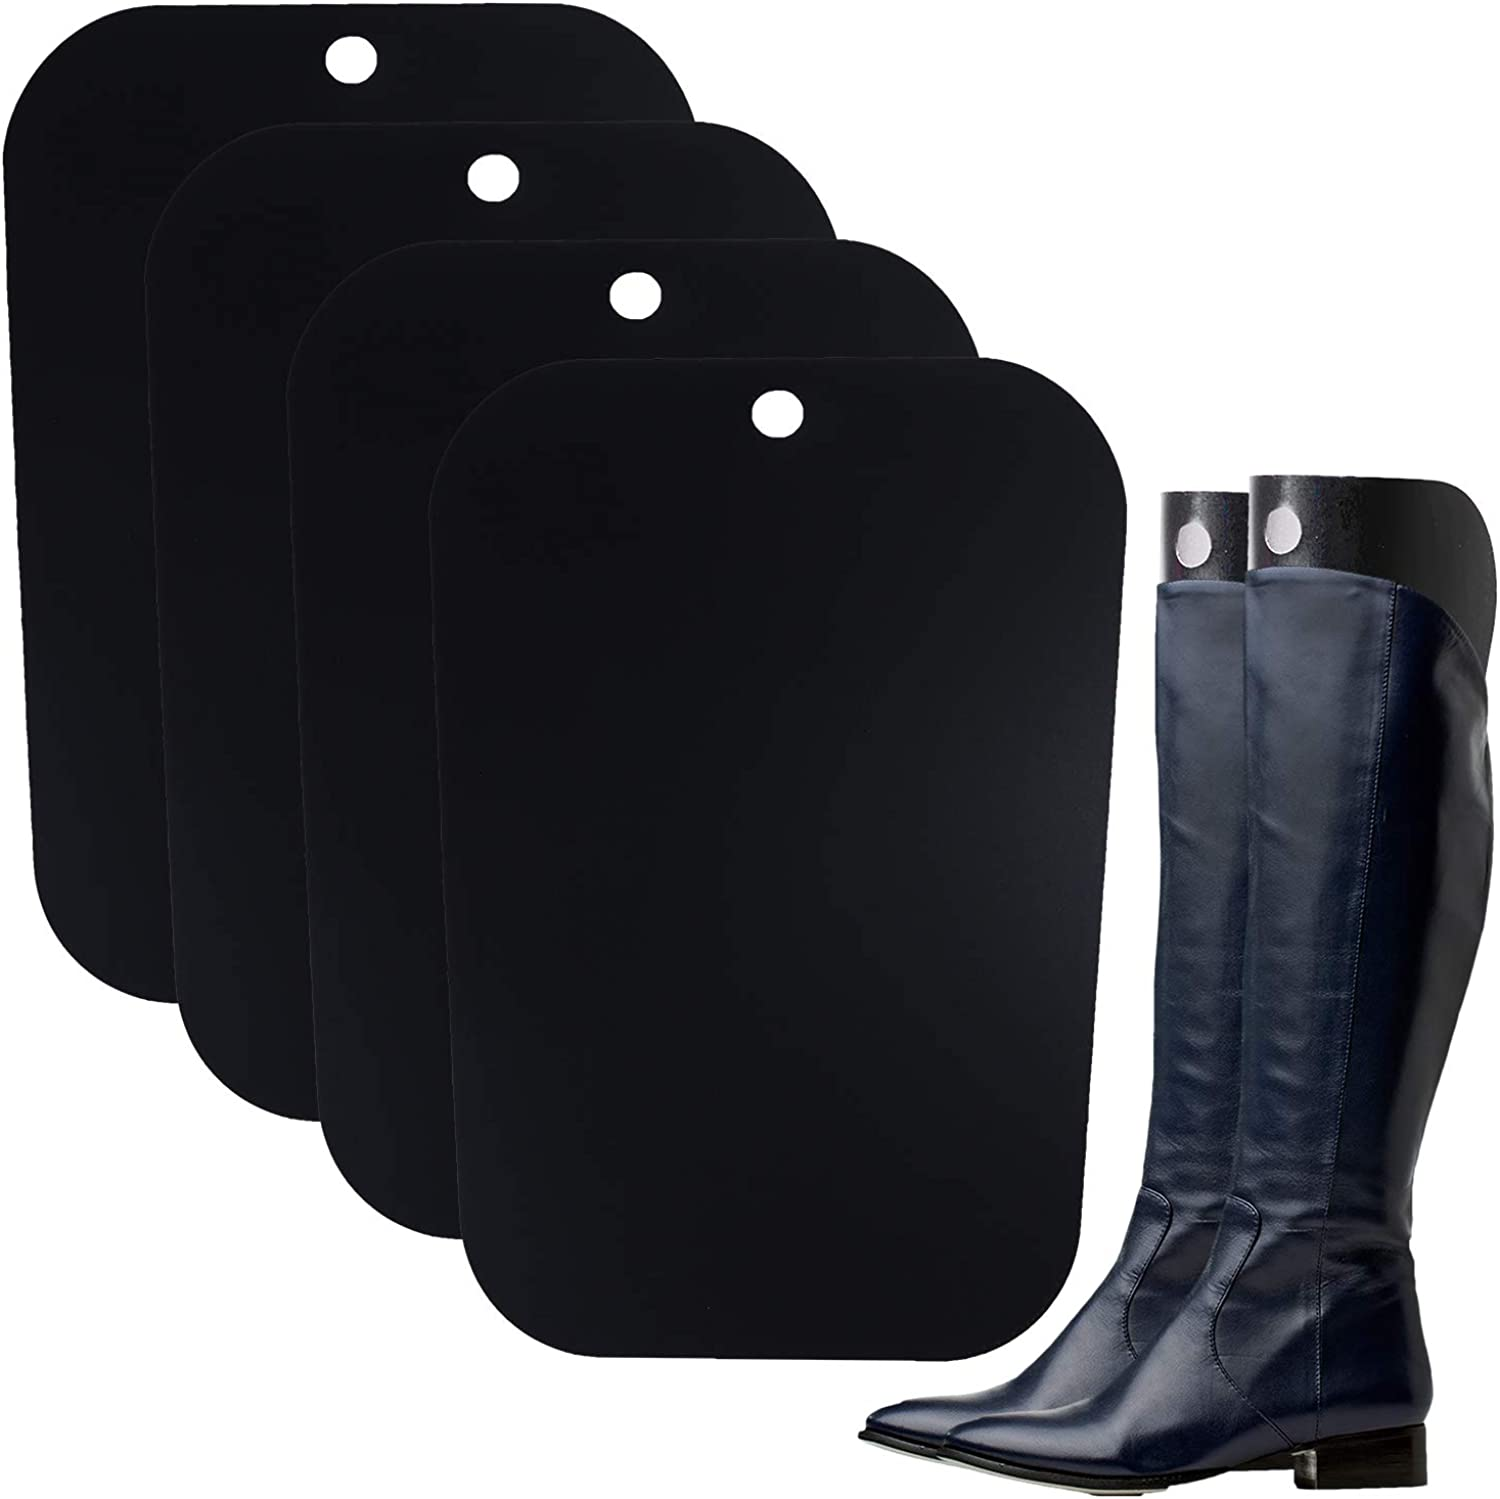 Ruisita 4 Pieces Boot Shapers Inserts Form Boots Time sale Opening large release sale Breathable Supp